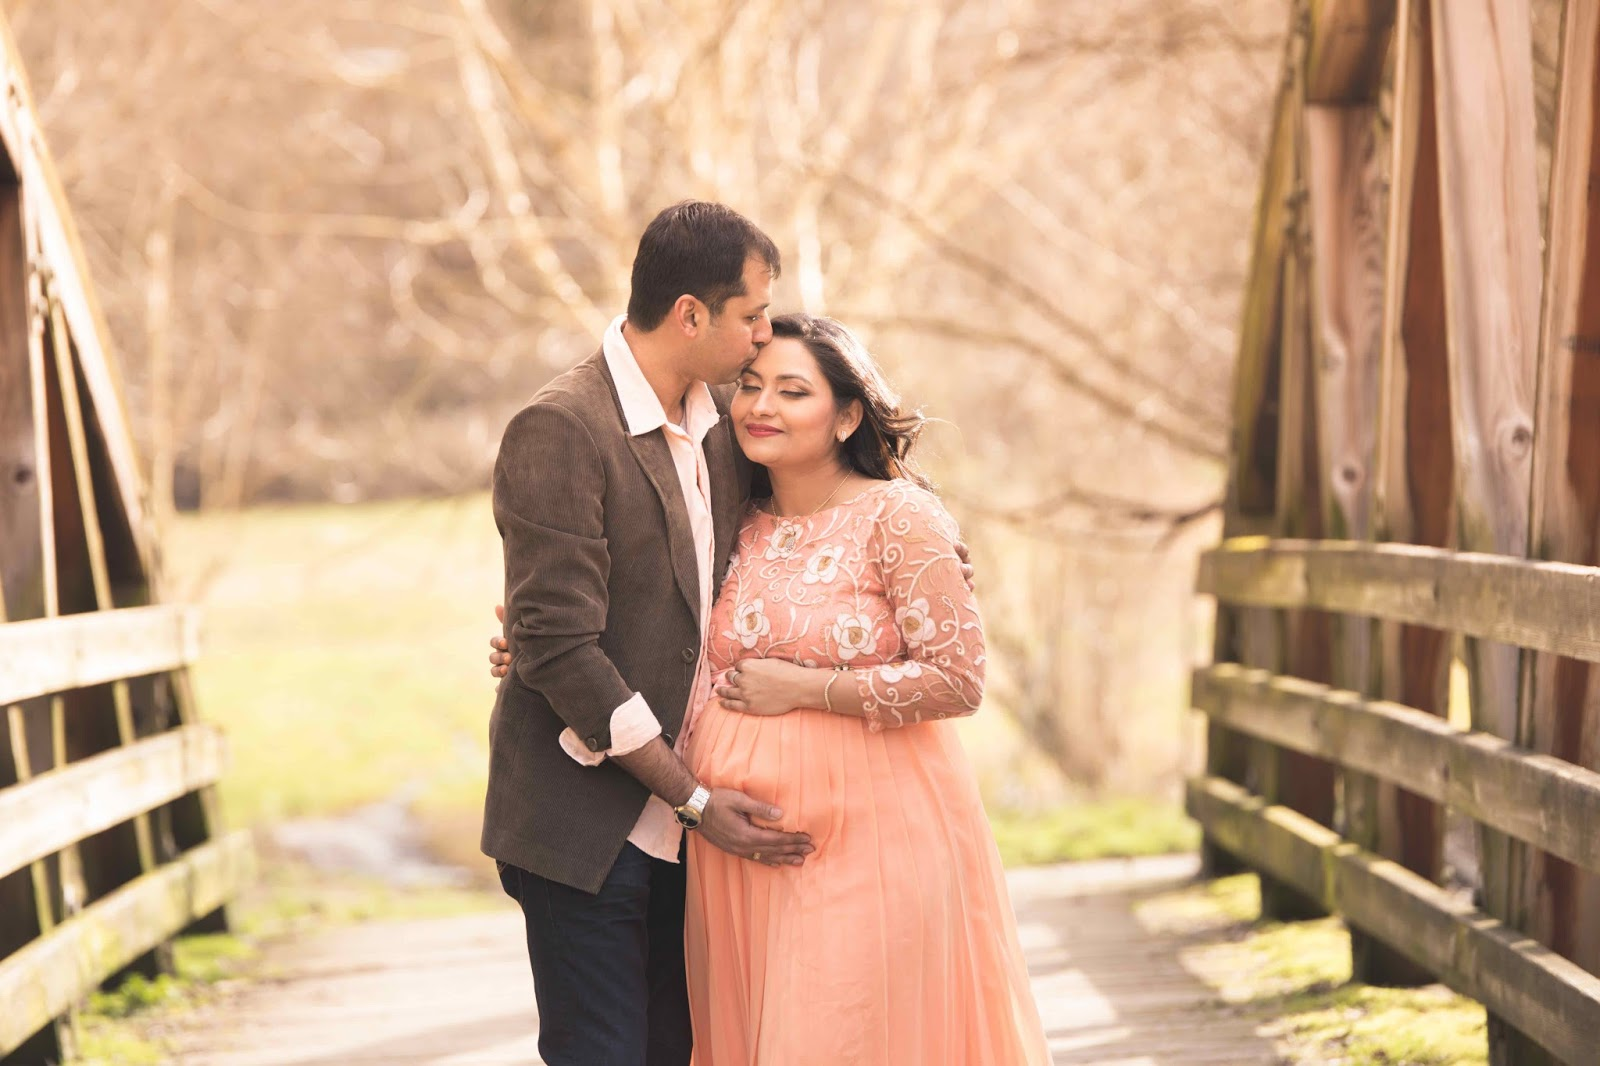 pregnant lady, maternity shoot, indian pregnant woman, beautiful mom to be,